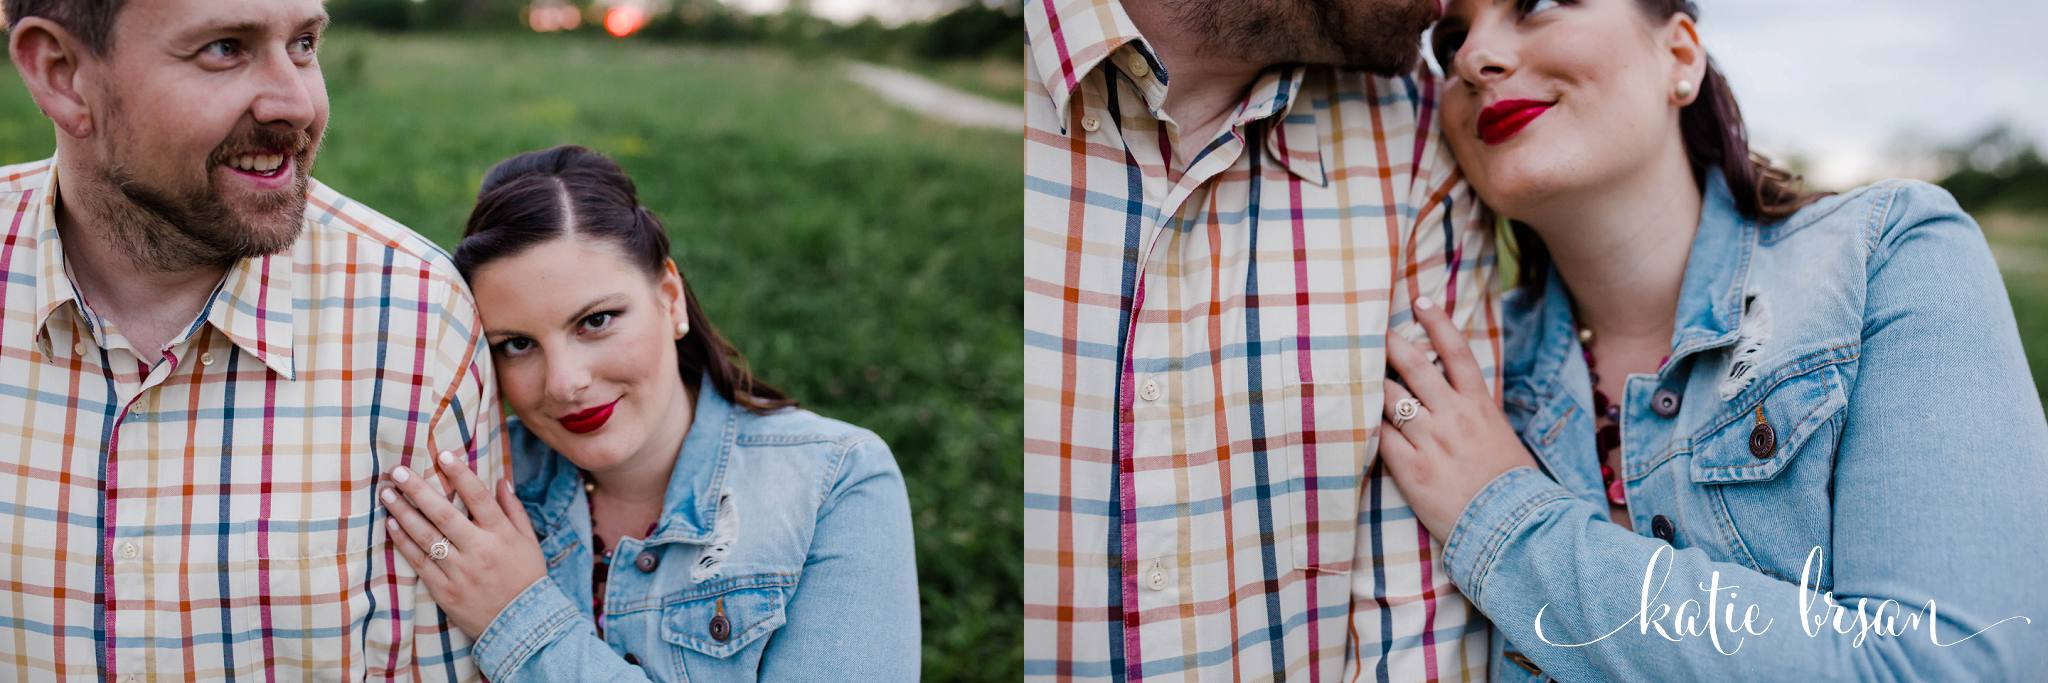 KatieBrsan-HomerGlen-NewLenox-EngagementSession-HadleyValley-TeacherEngagementSession-ChicagoWeddingPhotographer_0594.jpg